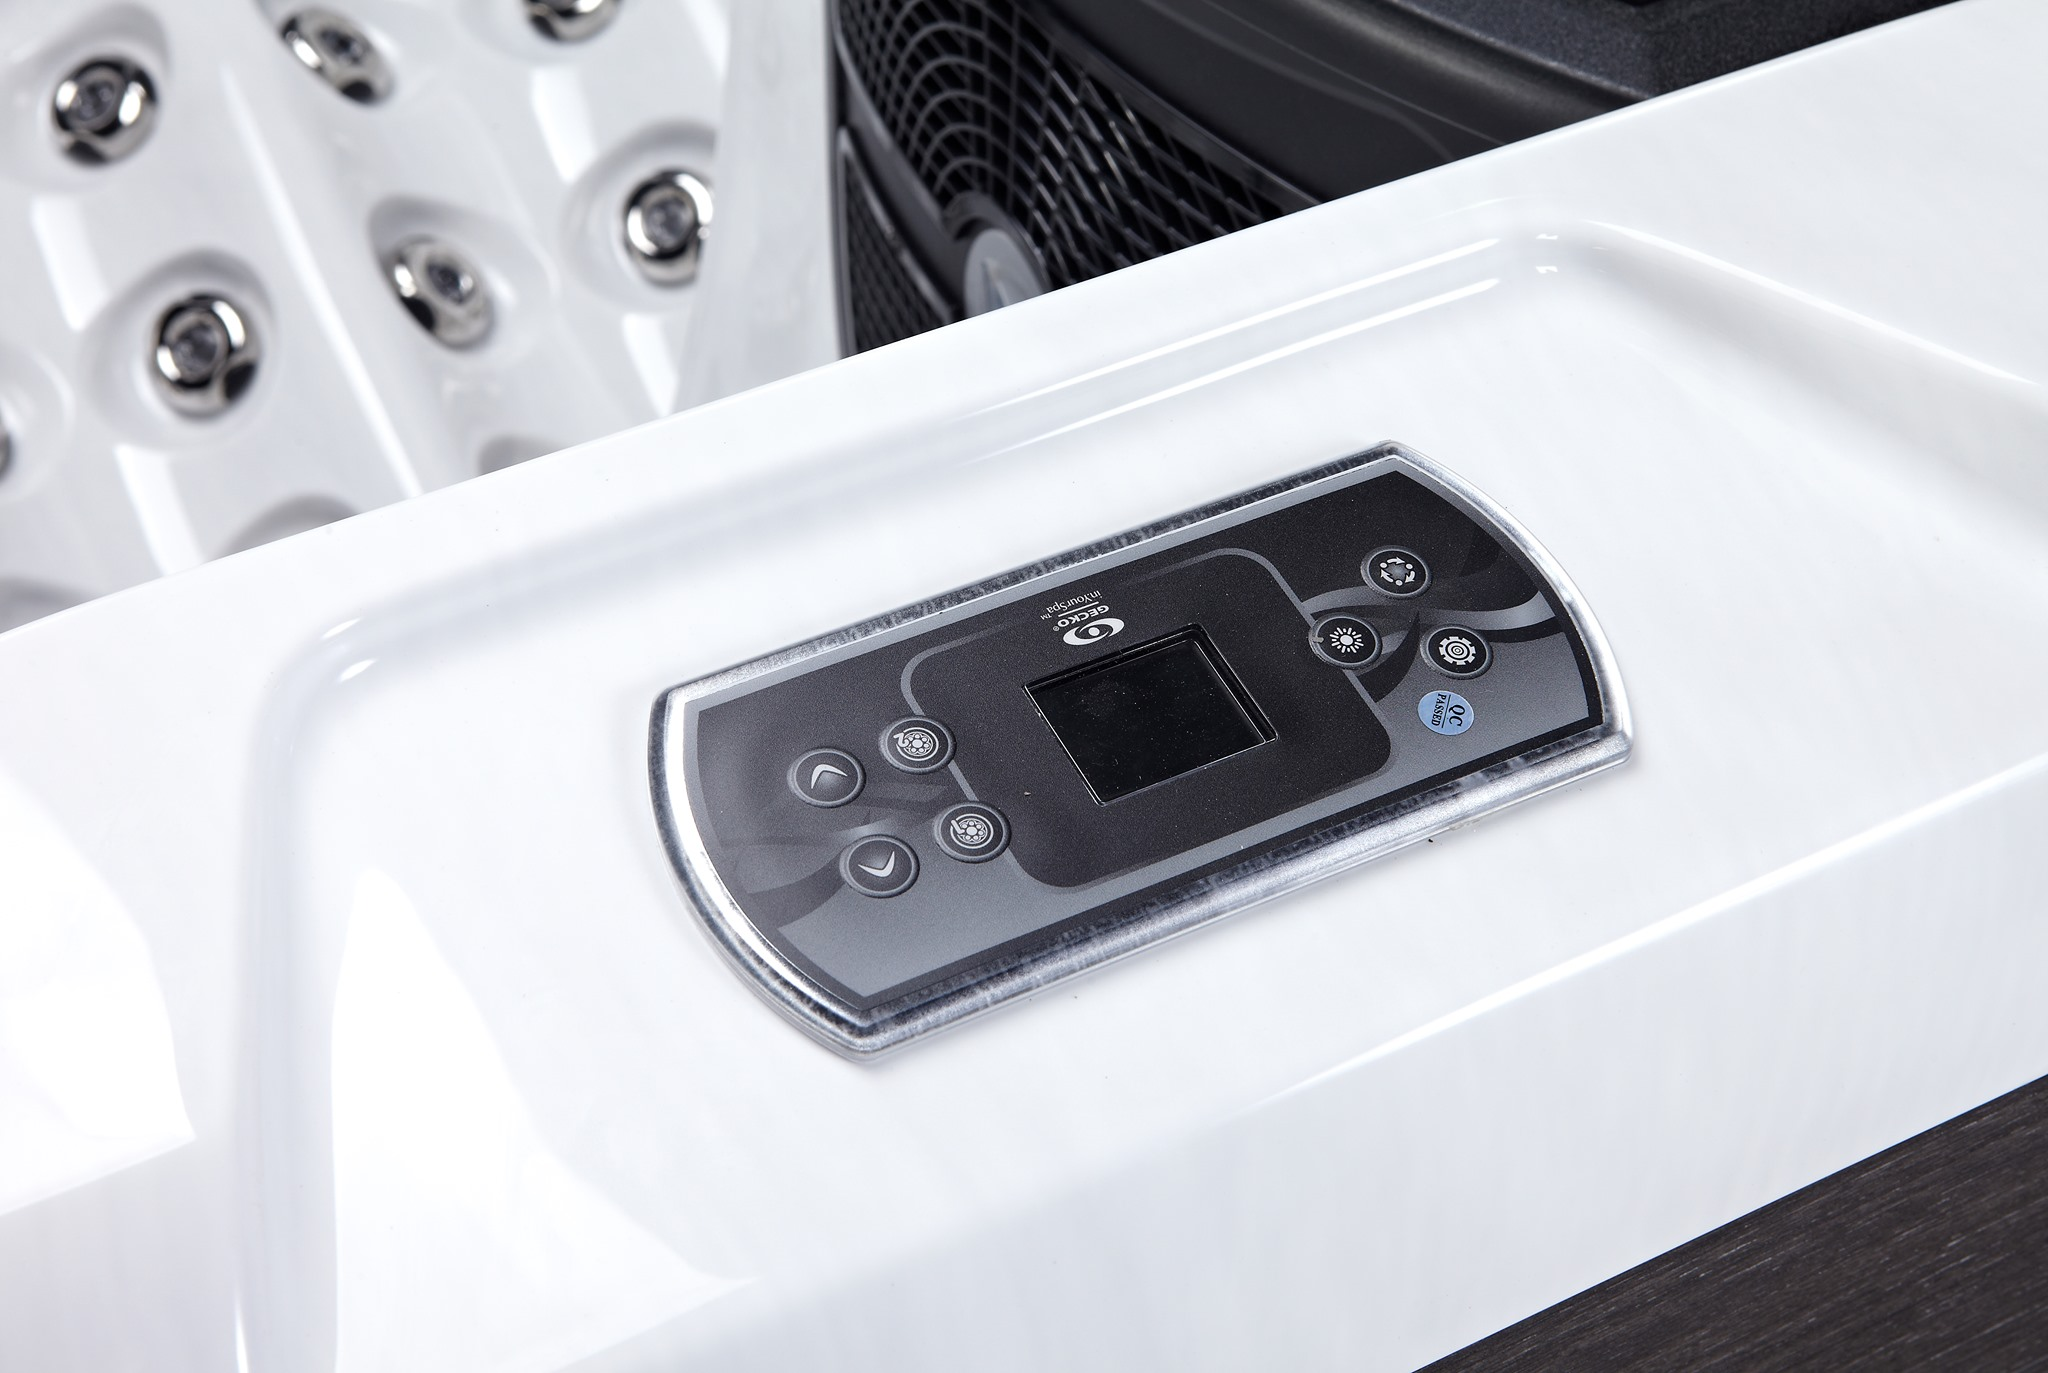 Quality, comfort and power  The Favells Emperor range Augustus spa includes 61 jets, water features, LED lights and lighted jets.   Using 2 x 3 HP pumps the jet pressure is very powerful and therefore the hydrotherapy is exceptional  » Spas, Swim Spas & Accessories Fuengirola, Costa Del Sol, Spain